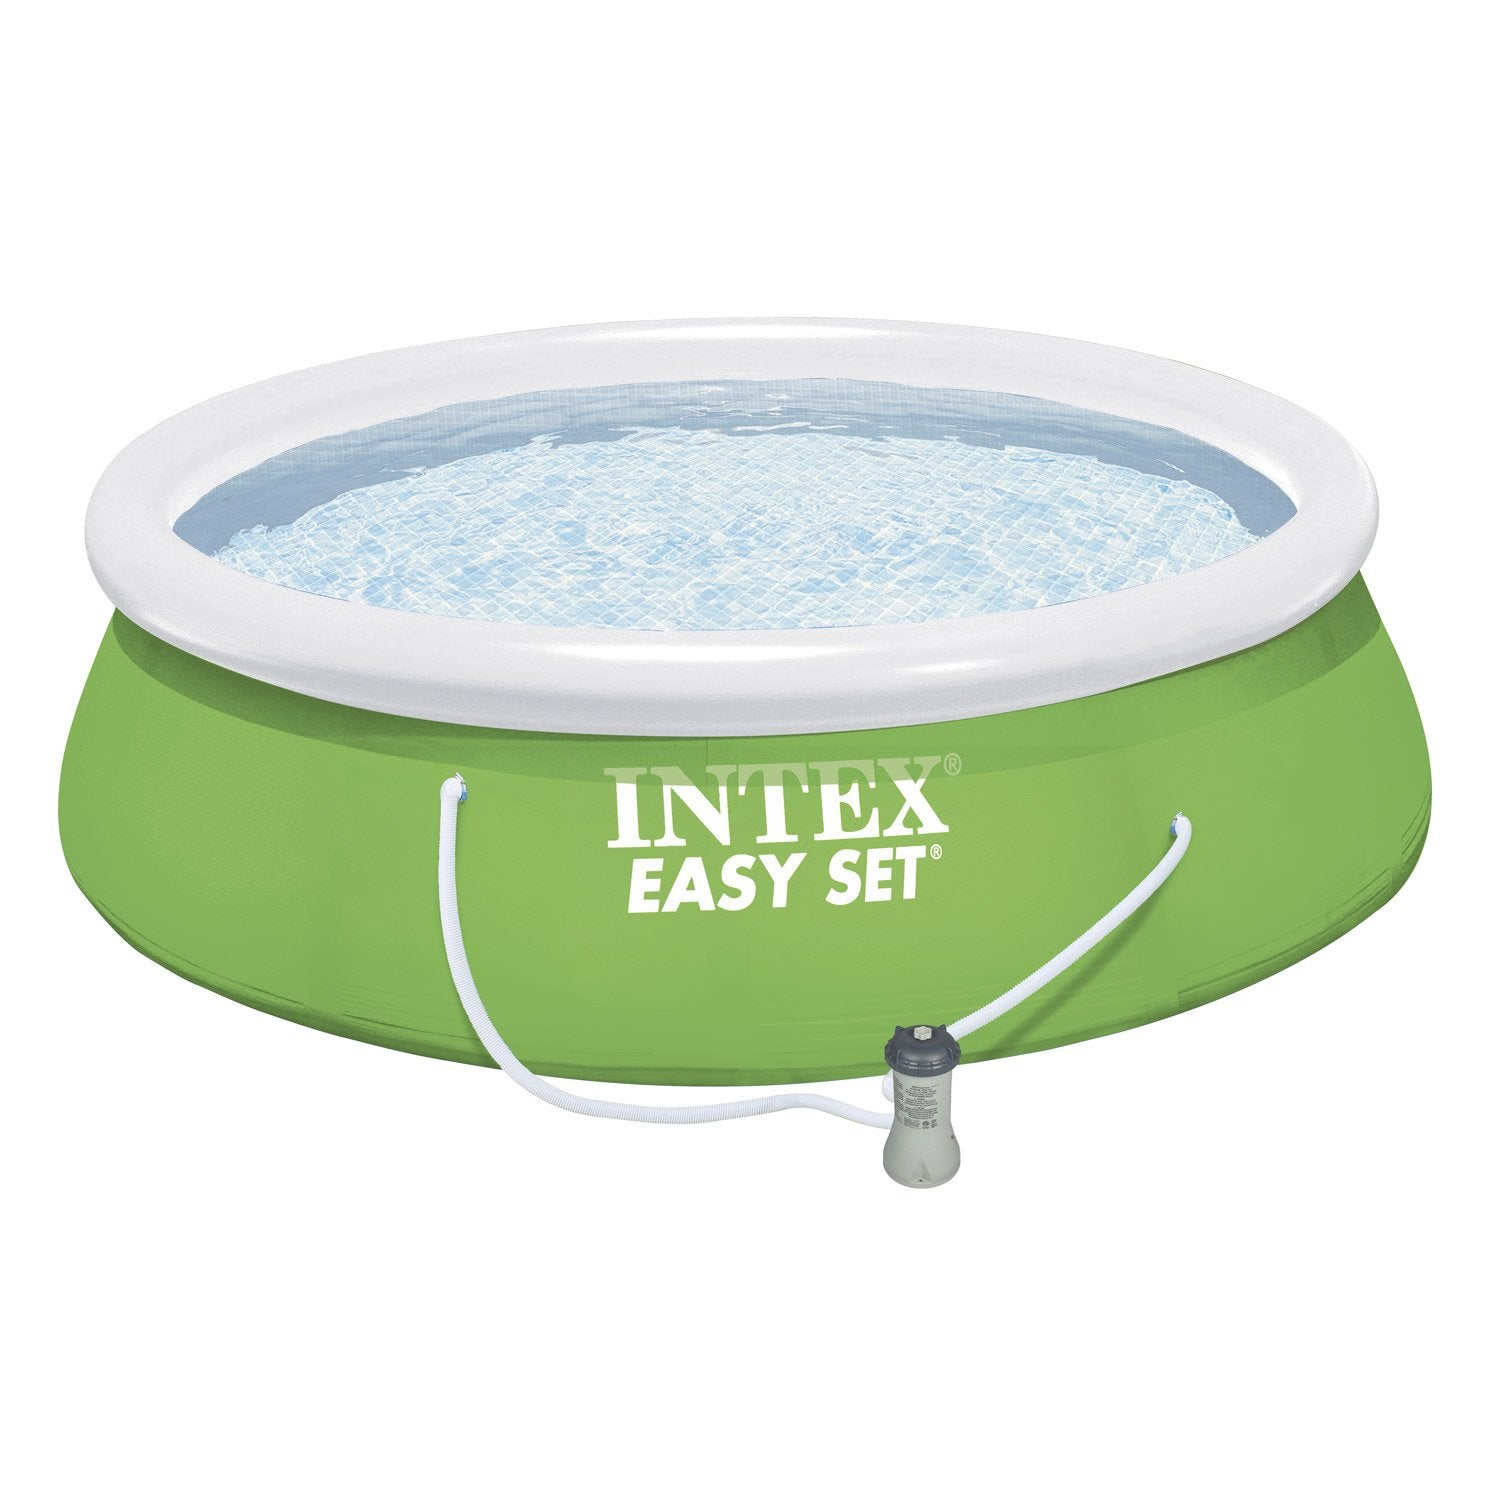 Piscine hors sol autoportante gonflable suppression intex for Achat piscine